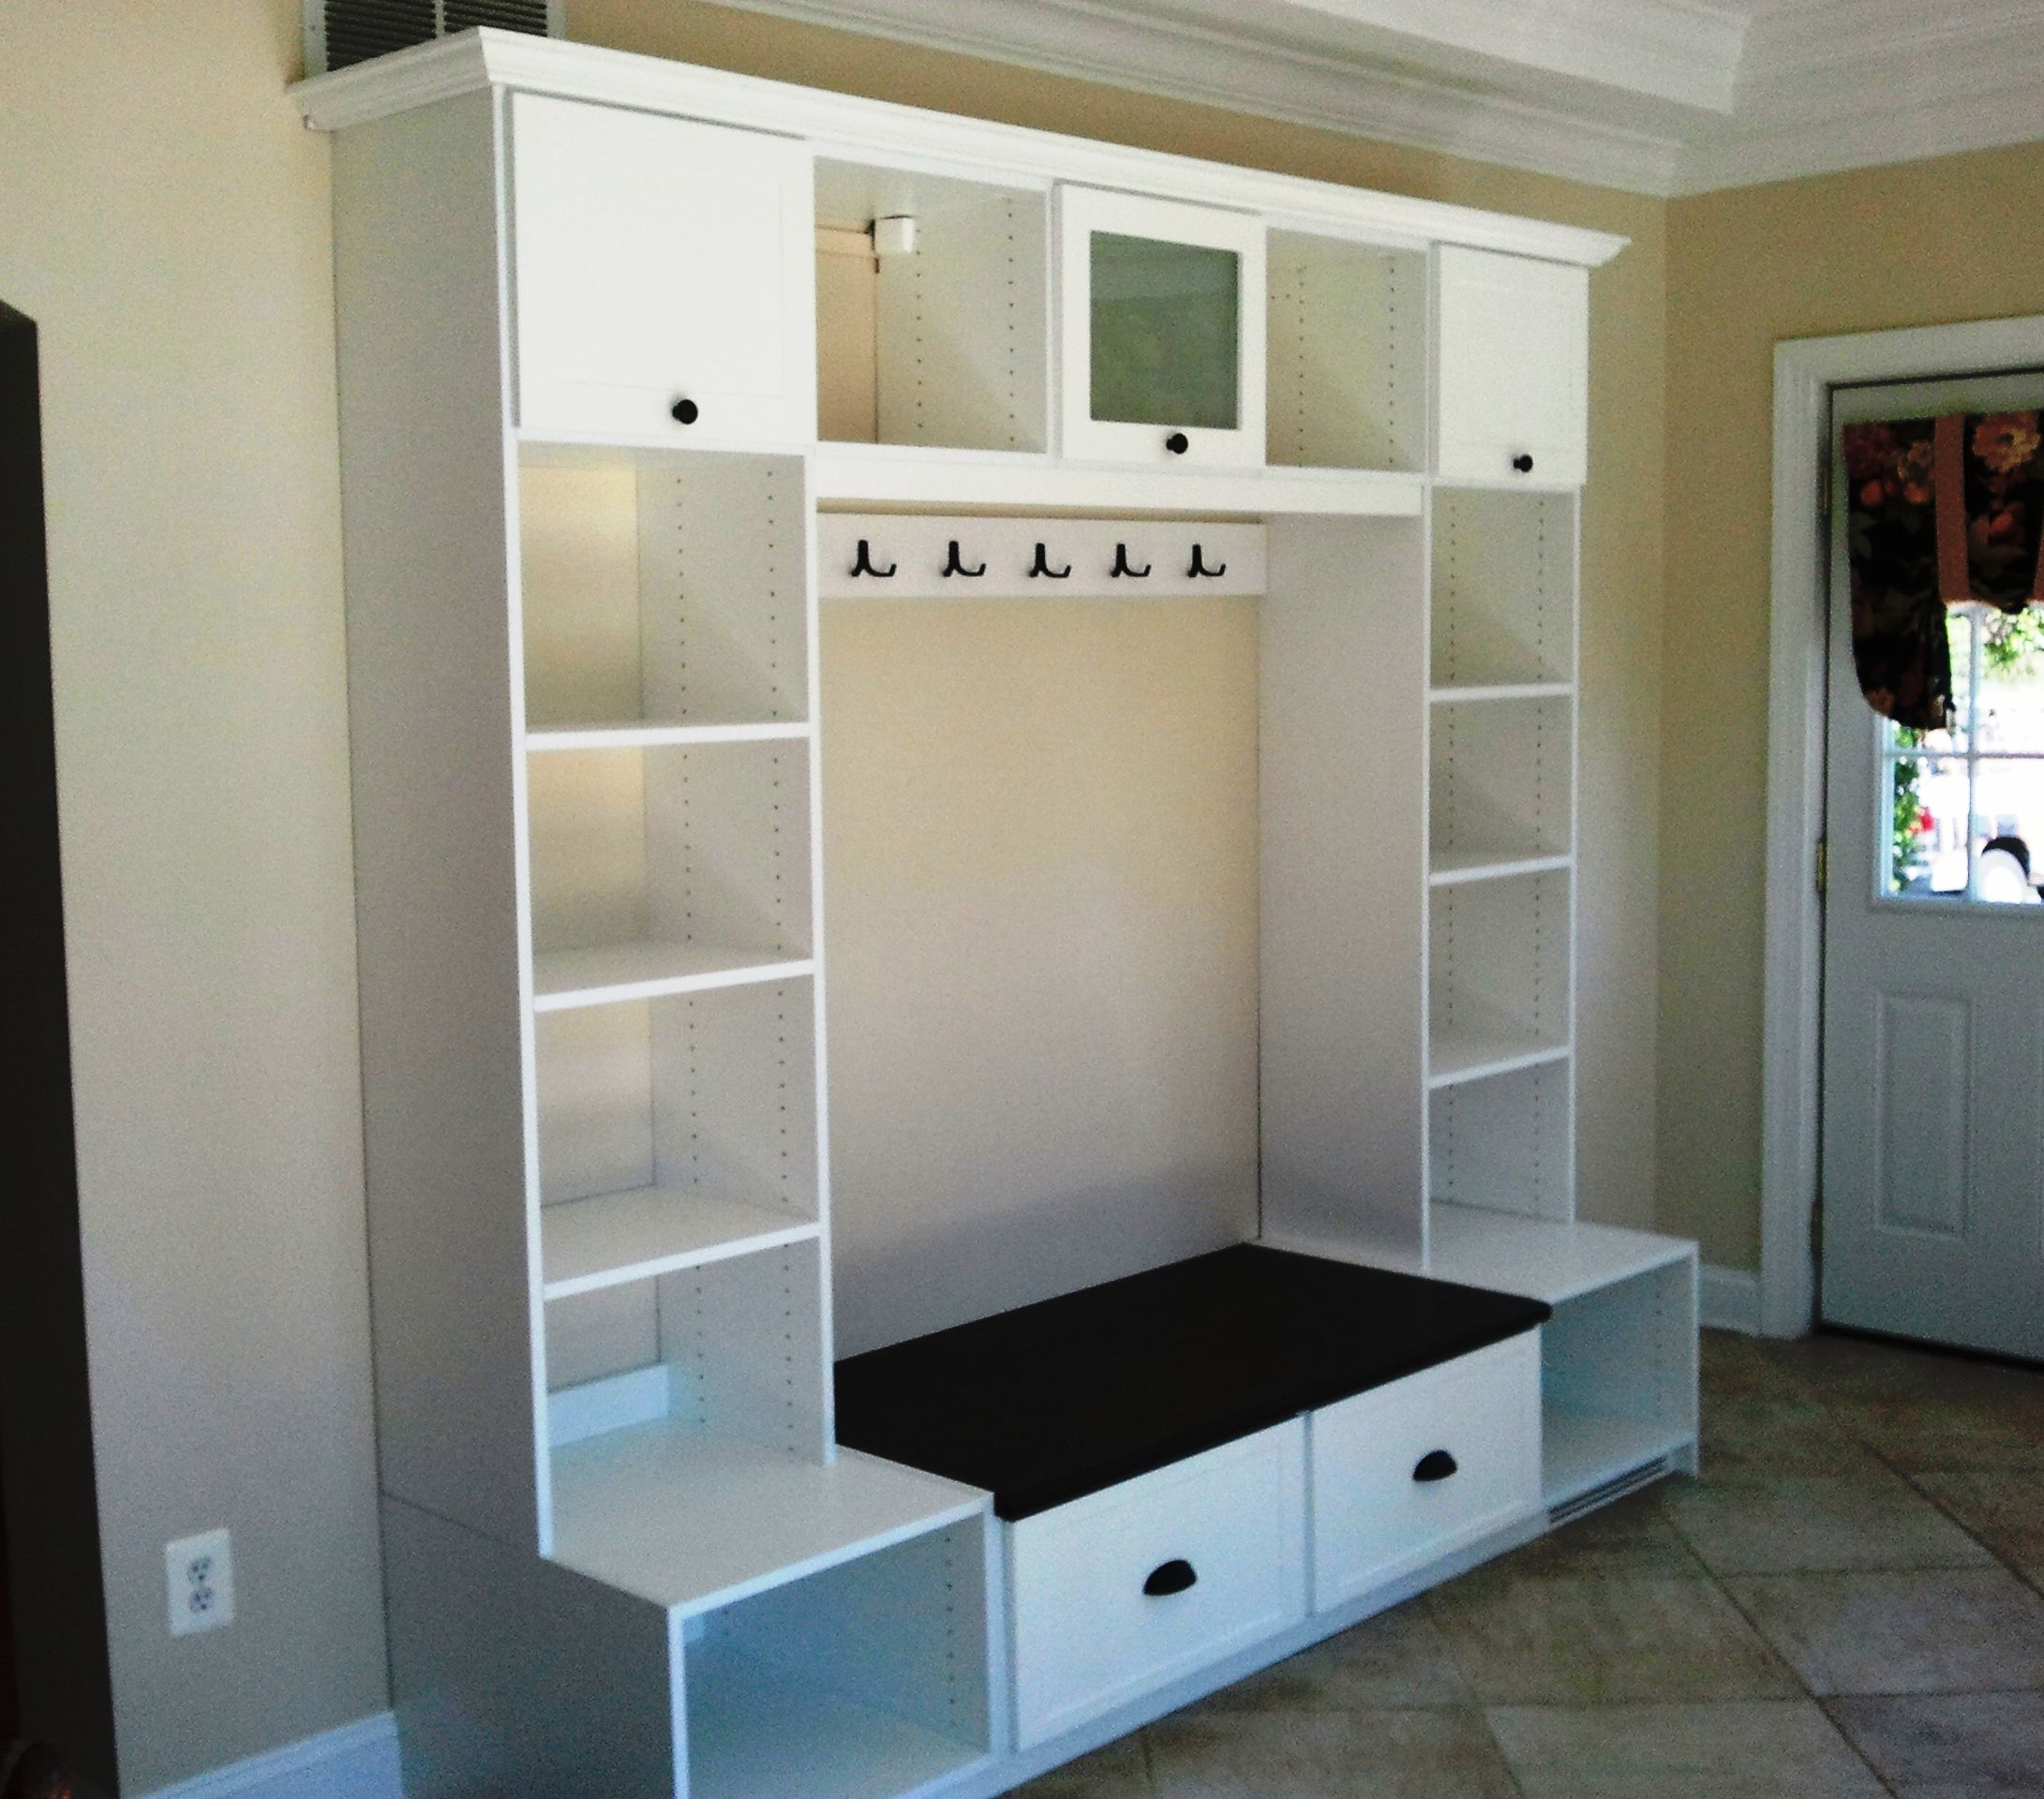 Foyer Closet Storage Ideas : Entryway unit featuring crown molding hooks cubbies